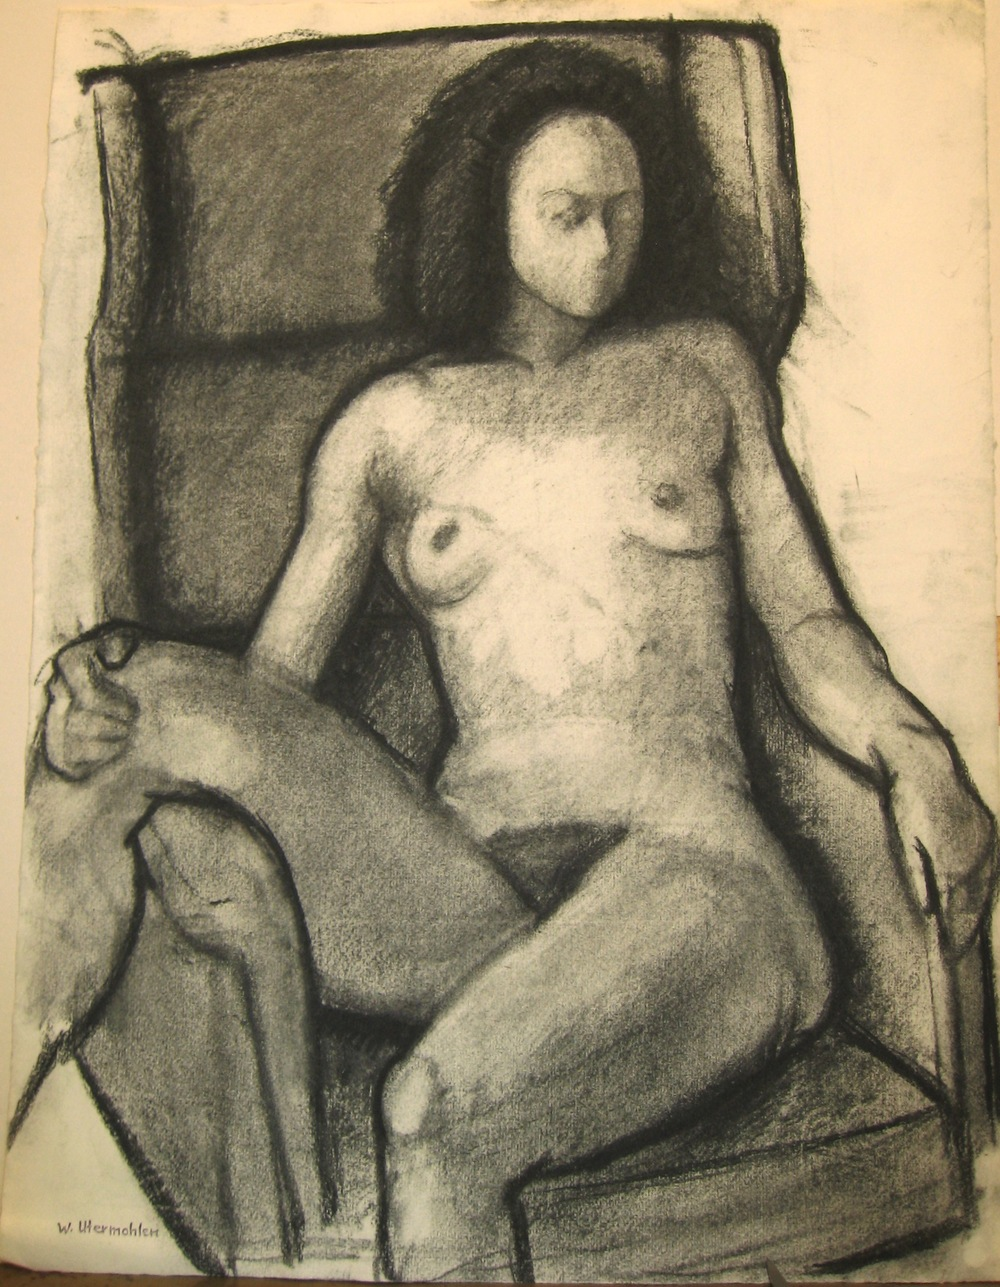 """Model in a Big Armchair 3,"" 1981, charcoal, 20.5x18 in."